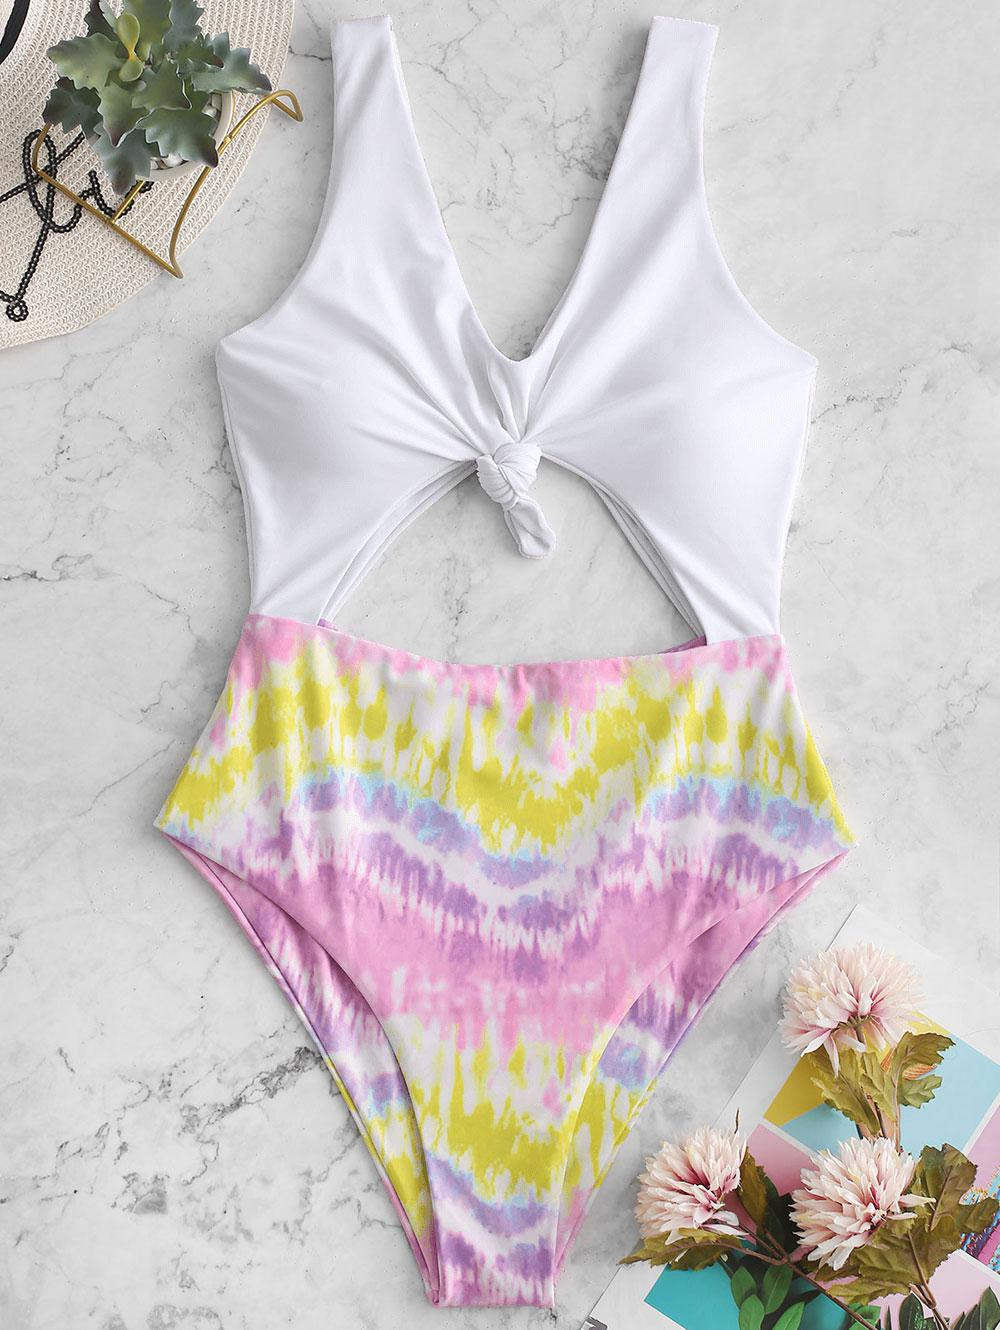 ZAFUL Colorful Tie Dye Knotted Monokini Swimsuit фото